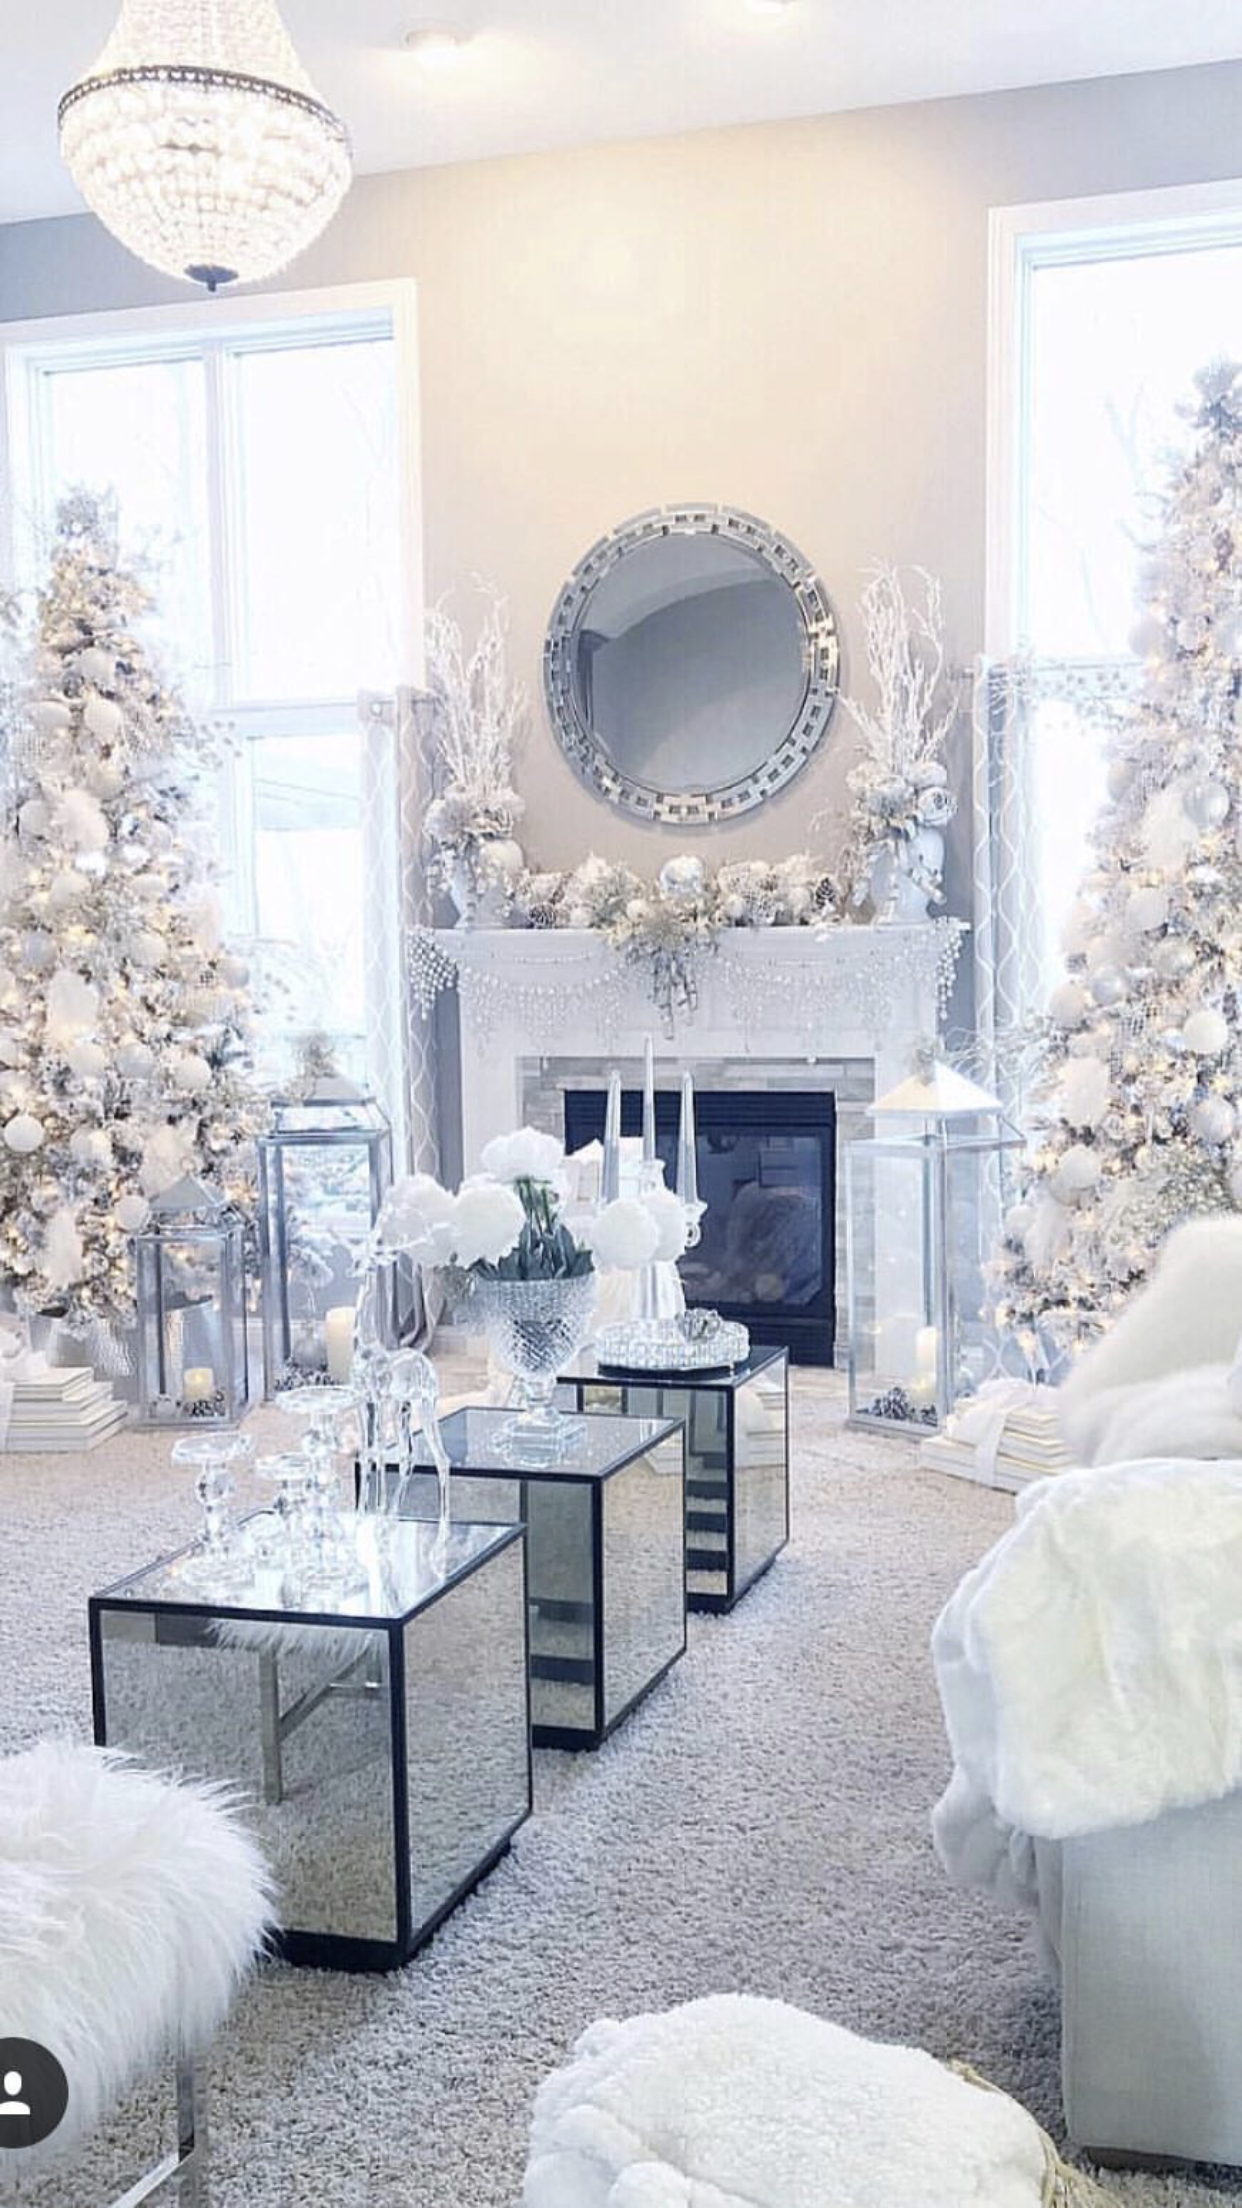 Christmas Tree Living Room Ideas.What A Winter Wonderland I Love How It Just Looks So